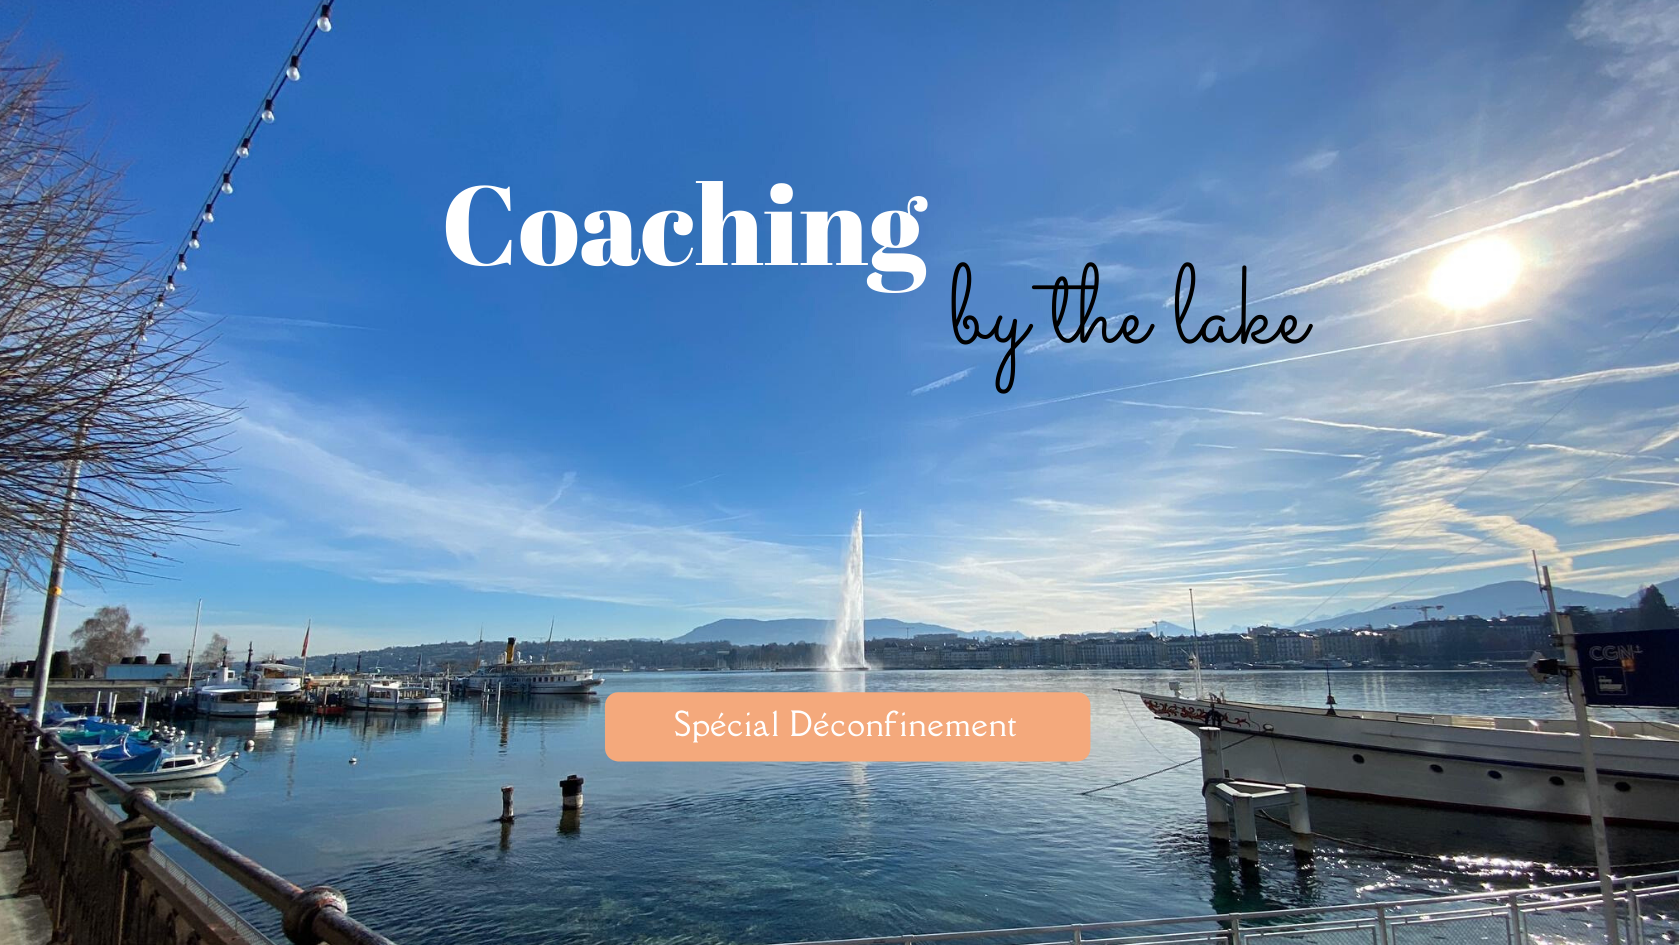 hypnose-coaching by the lake